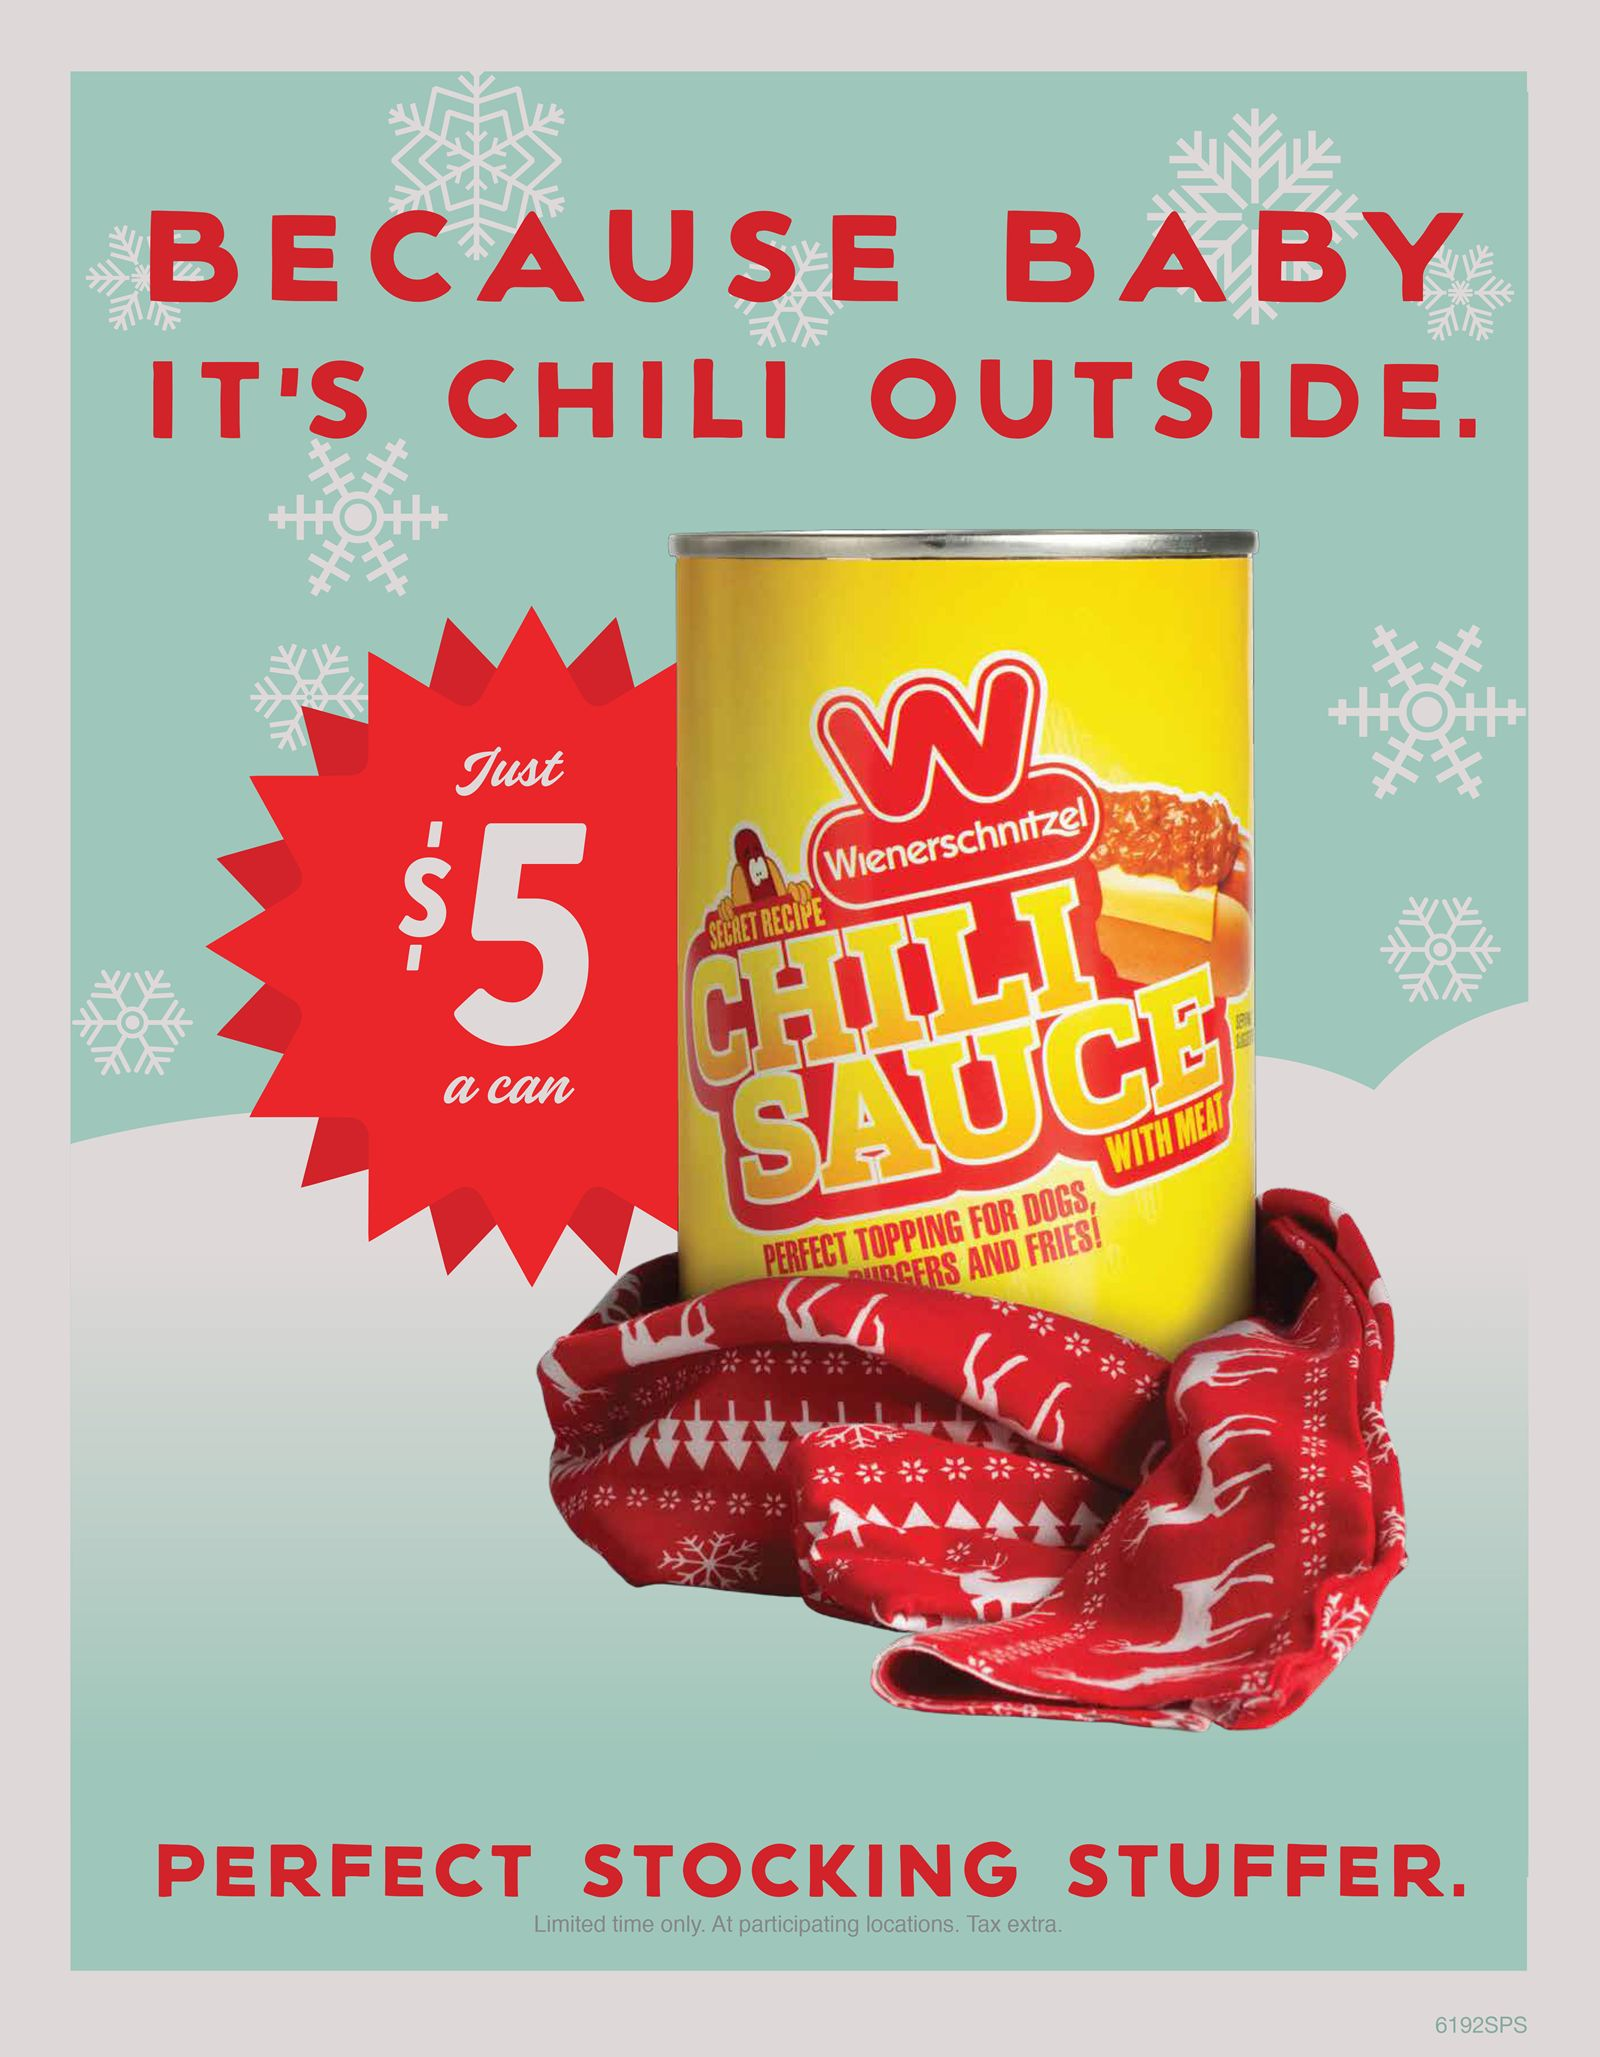 Wienerschnitzel's Famous Can of Chili is the Stocking Stuffer You Didn't Know You Needed!